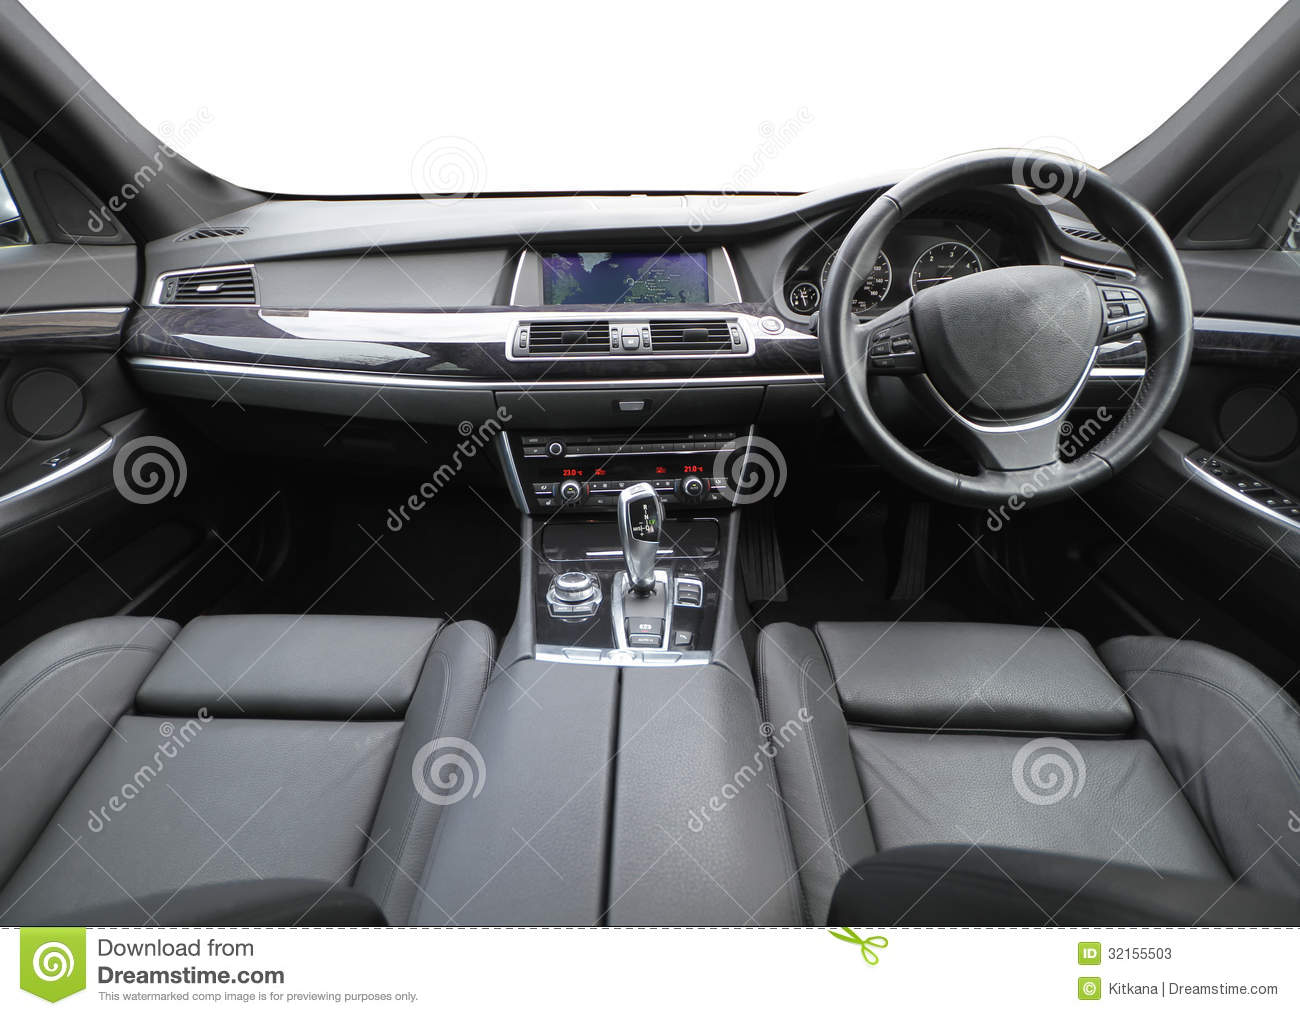 ... the inside of a high class car with white background for the windows